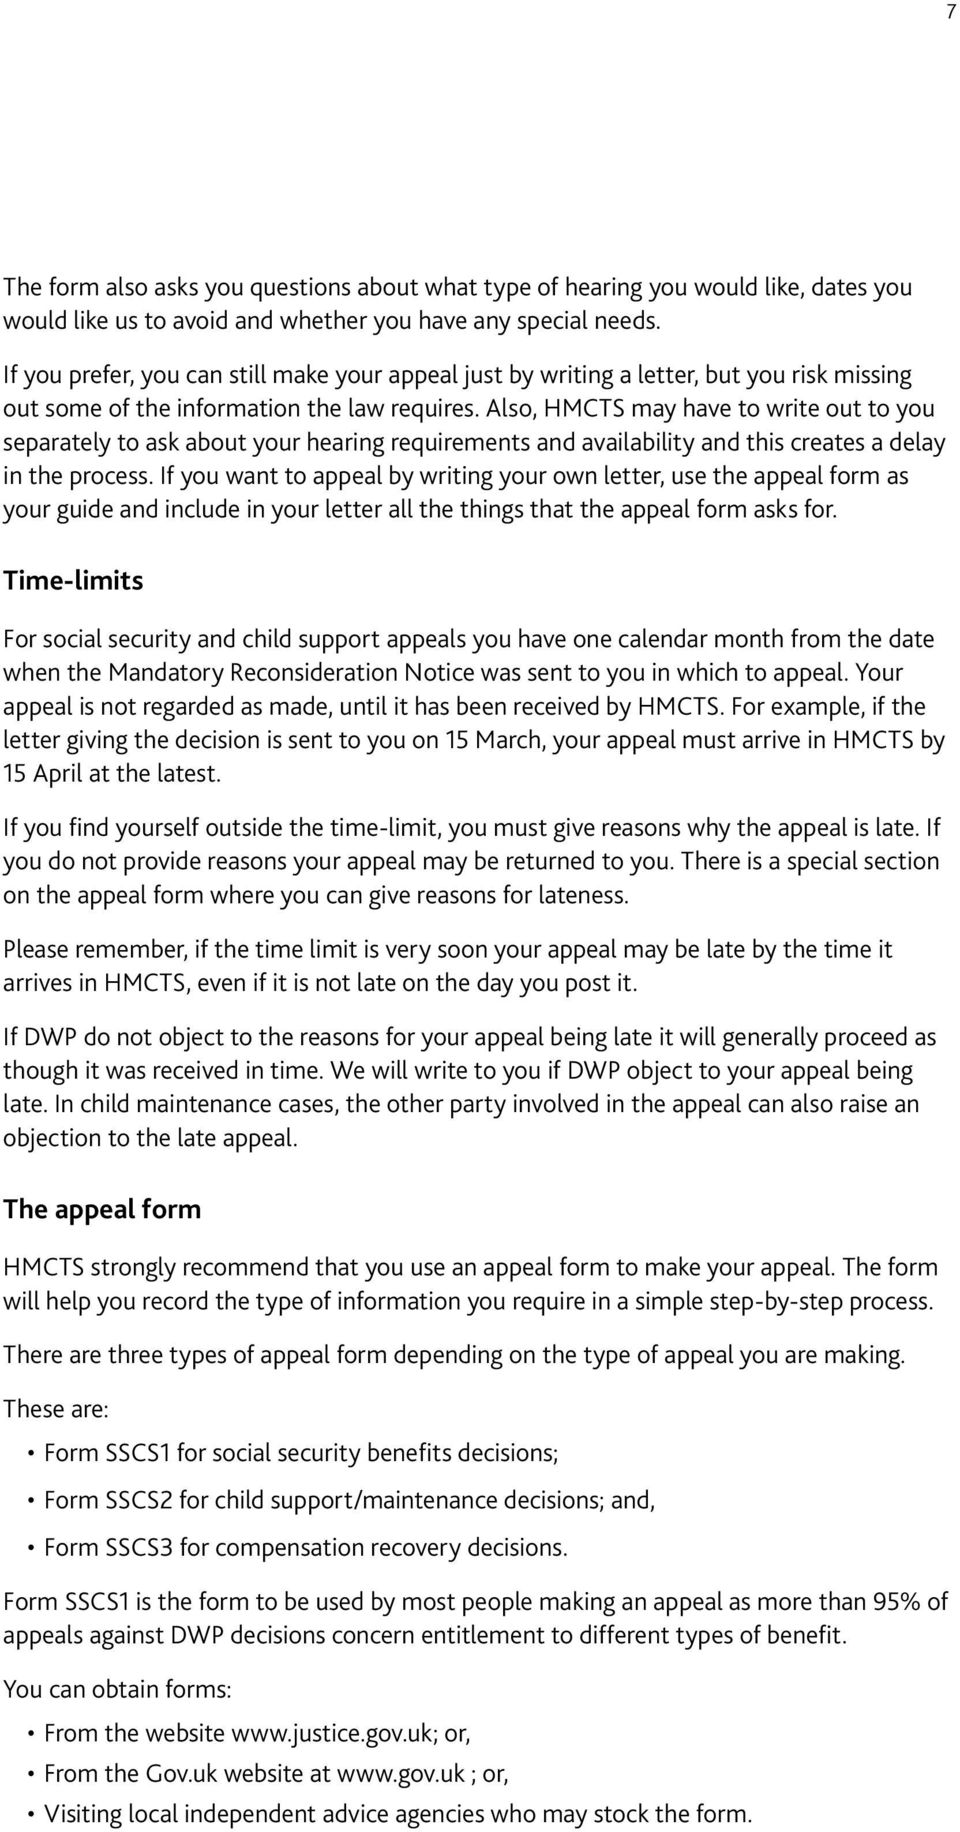 Child Support Appeal Sample Letter from docplayer.net